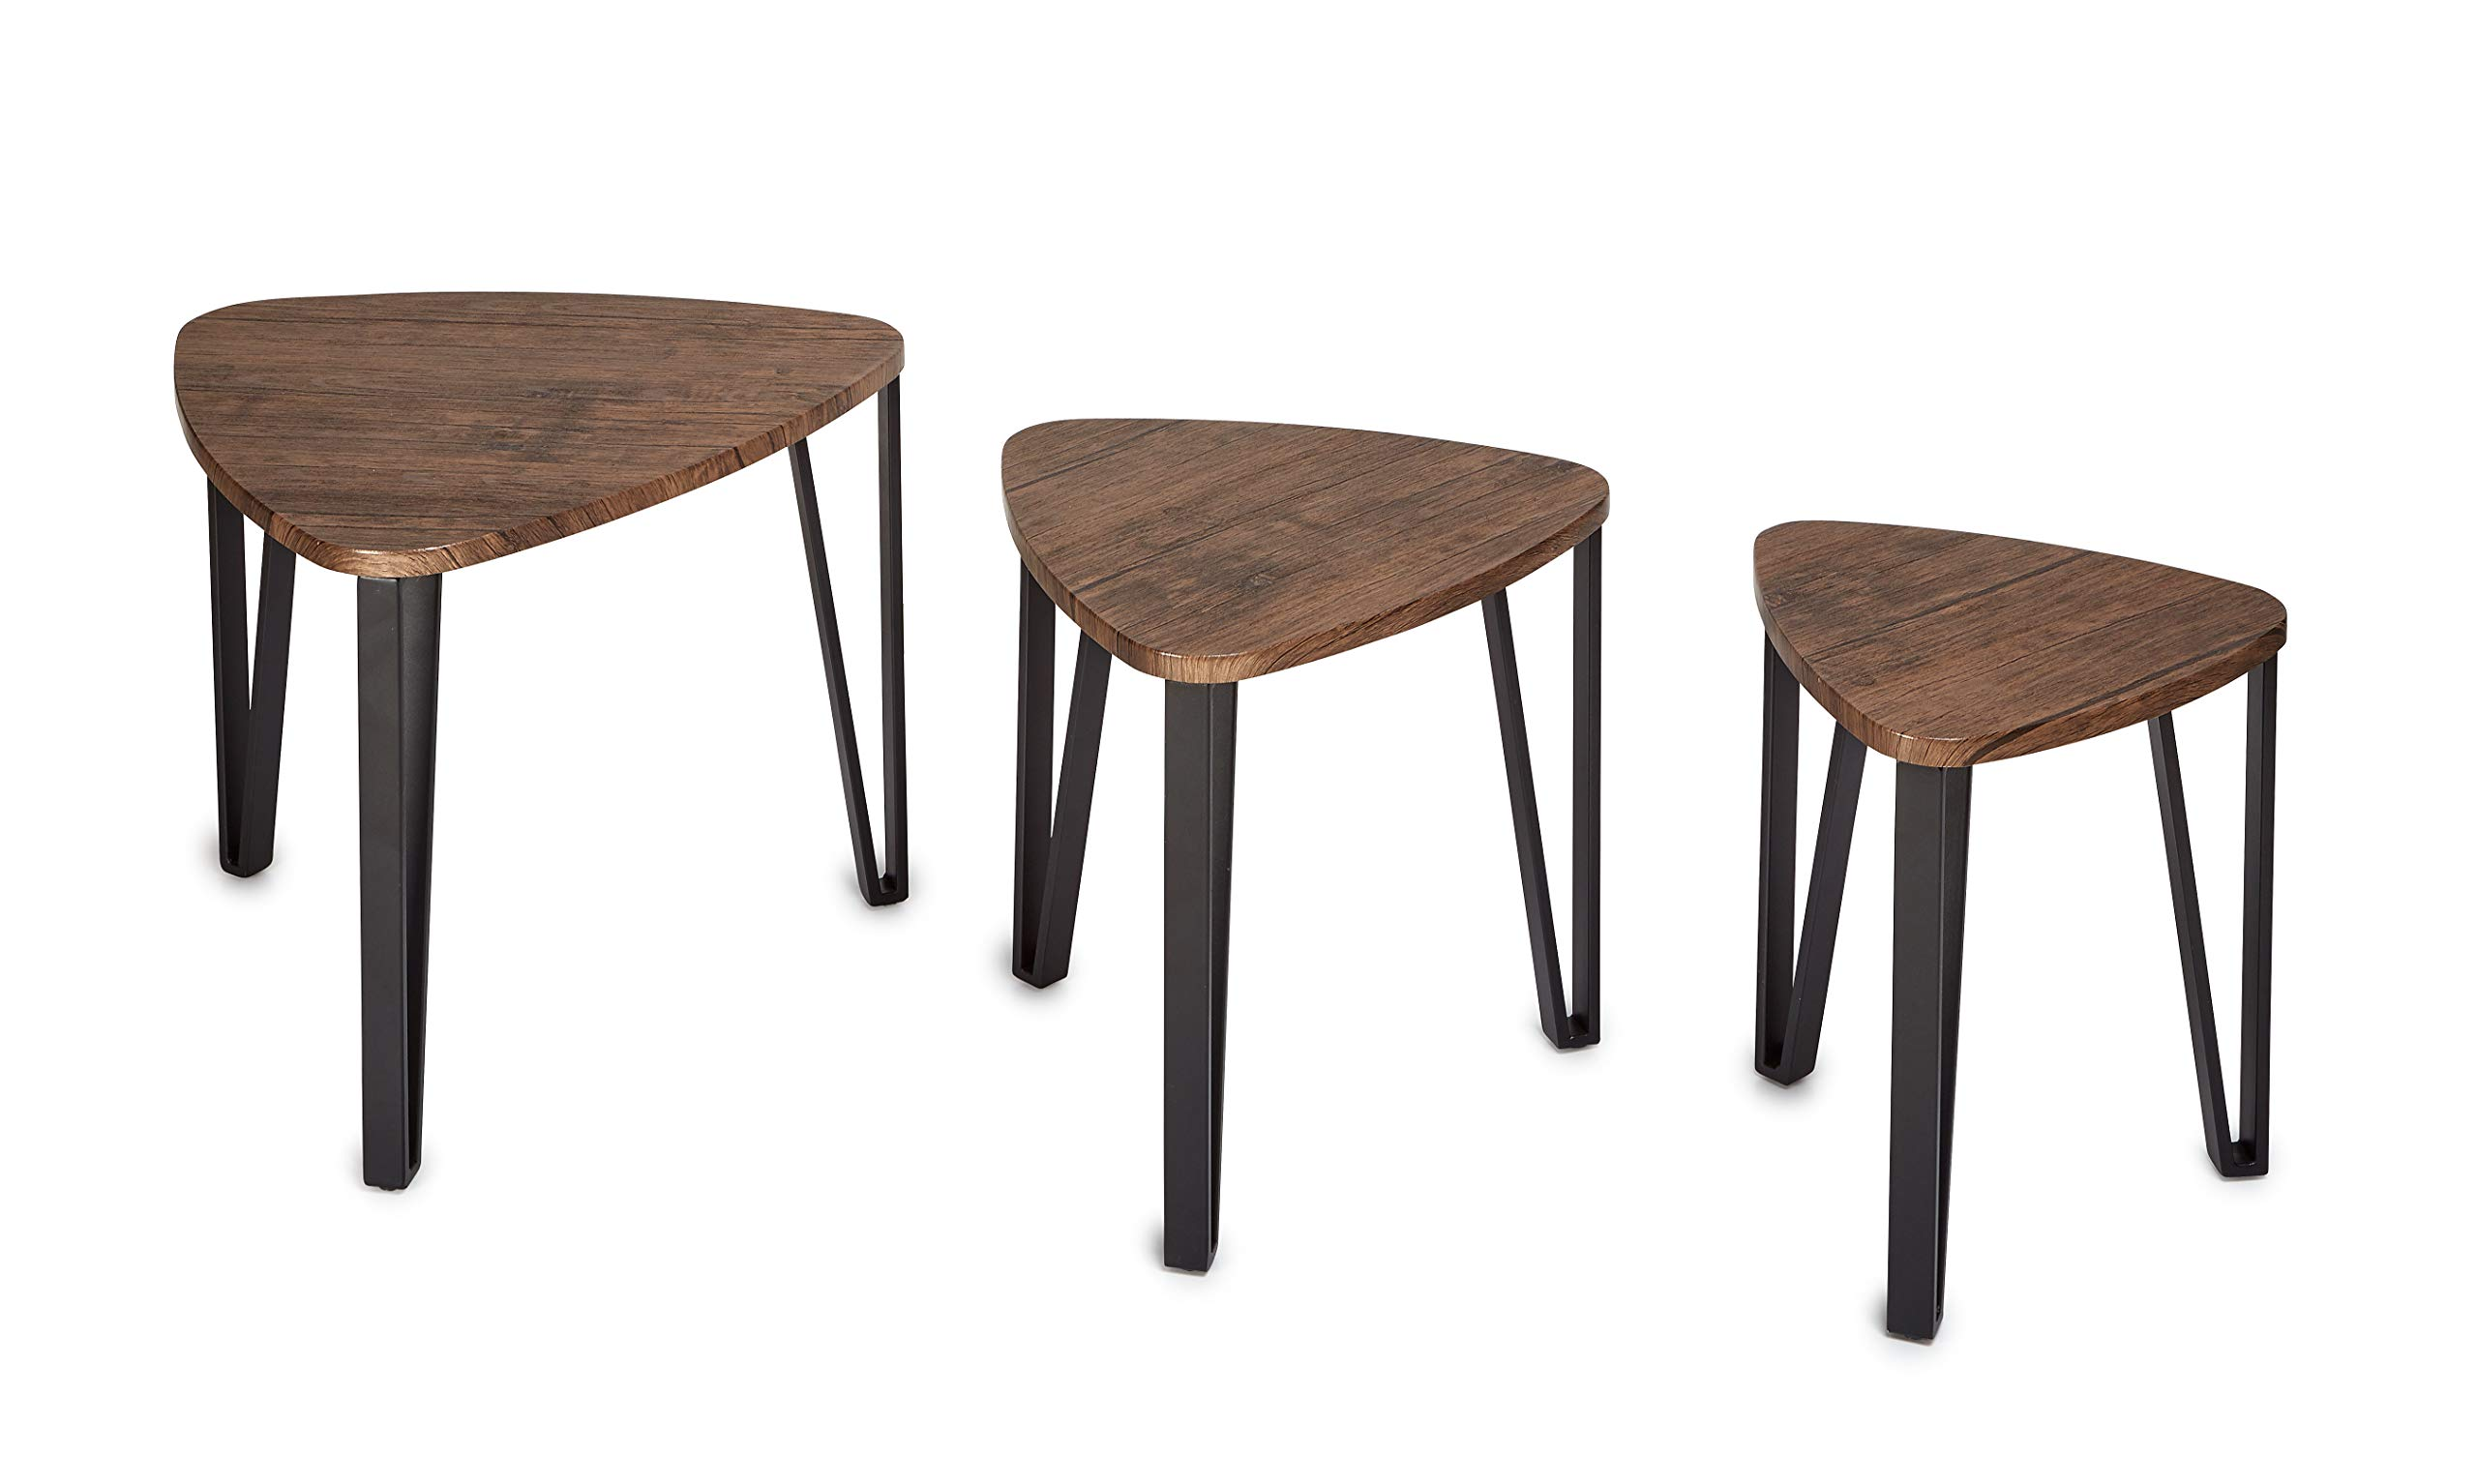 AdirHome Multifunctional Nesting Table Brown Espresso Finish Set of 3 - Stackable Modern Design for Living Room Balcony Home & Office Lounge Use (Espresso)